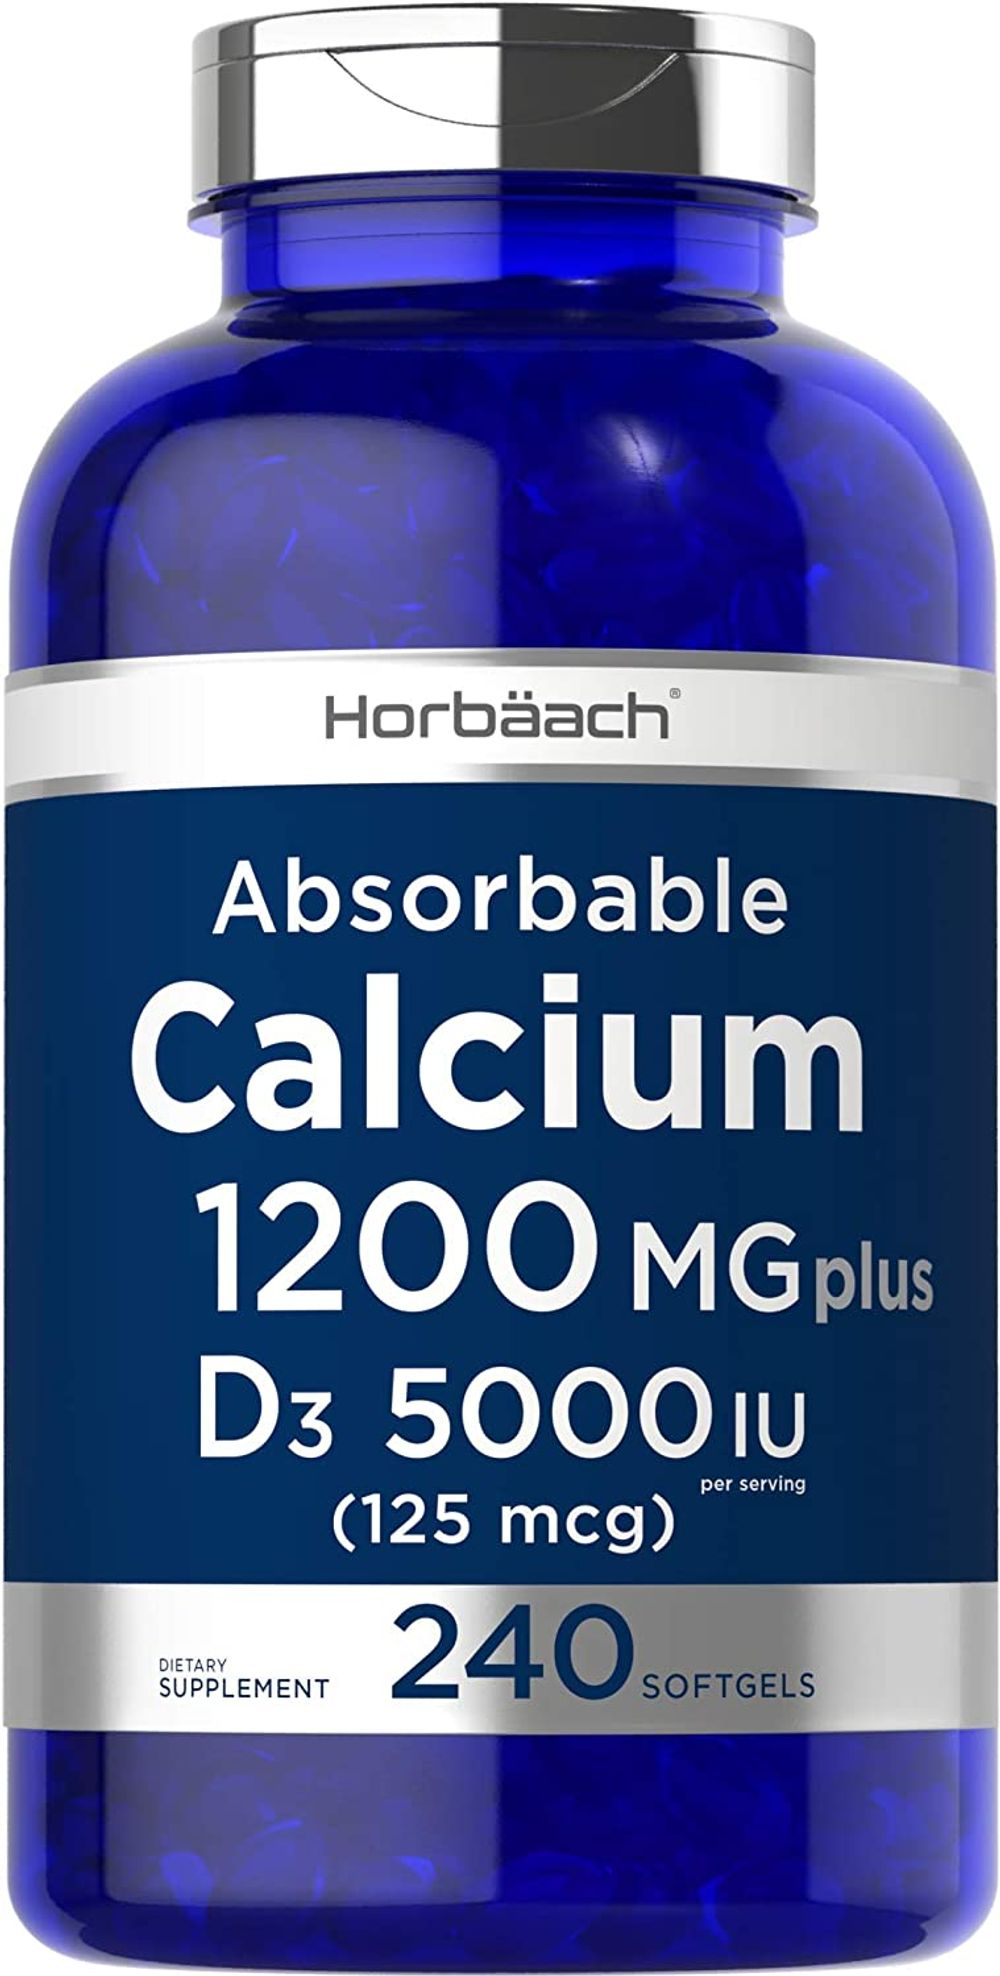 Absorbable Calcium with Vitamin D3   1200 mg   240 Softgels   5000 IU Vitamin D3   Non-GMO, Gluten Free Calcium Supplement   by Horbaach